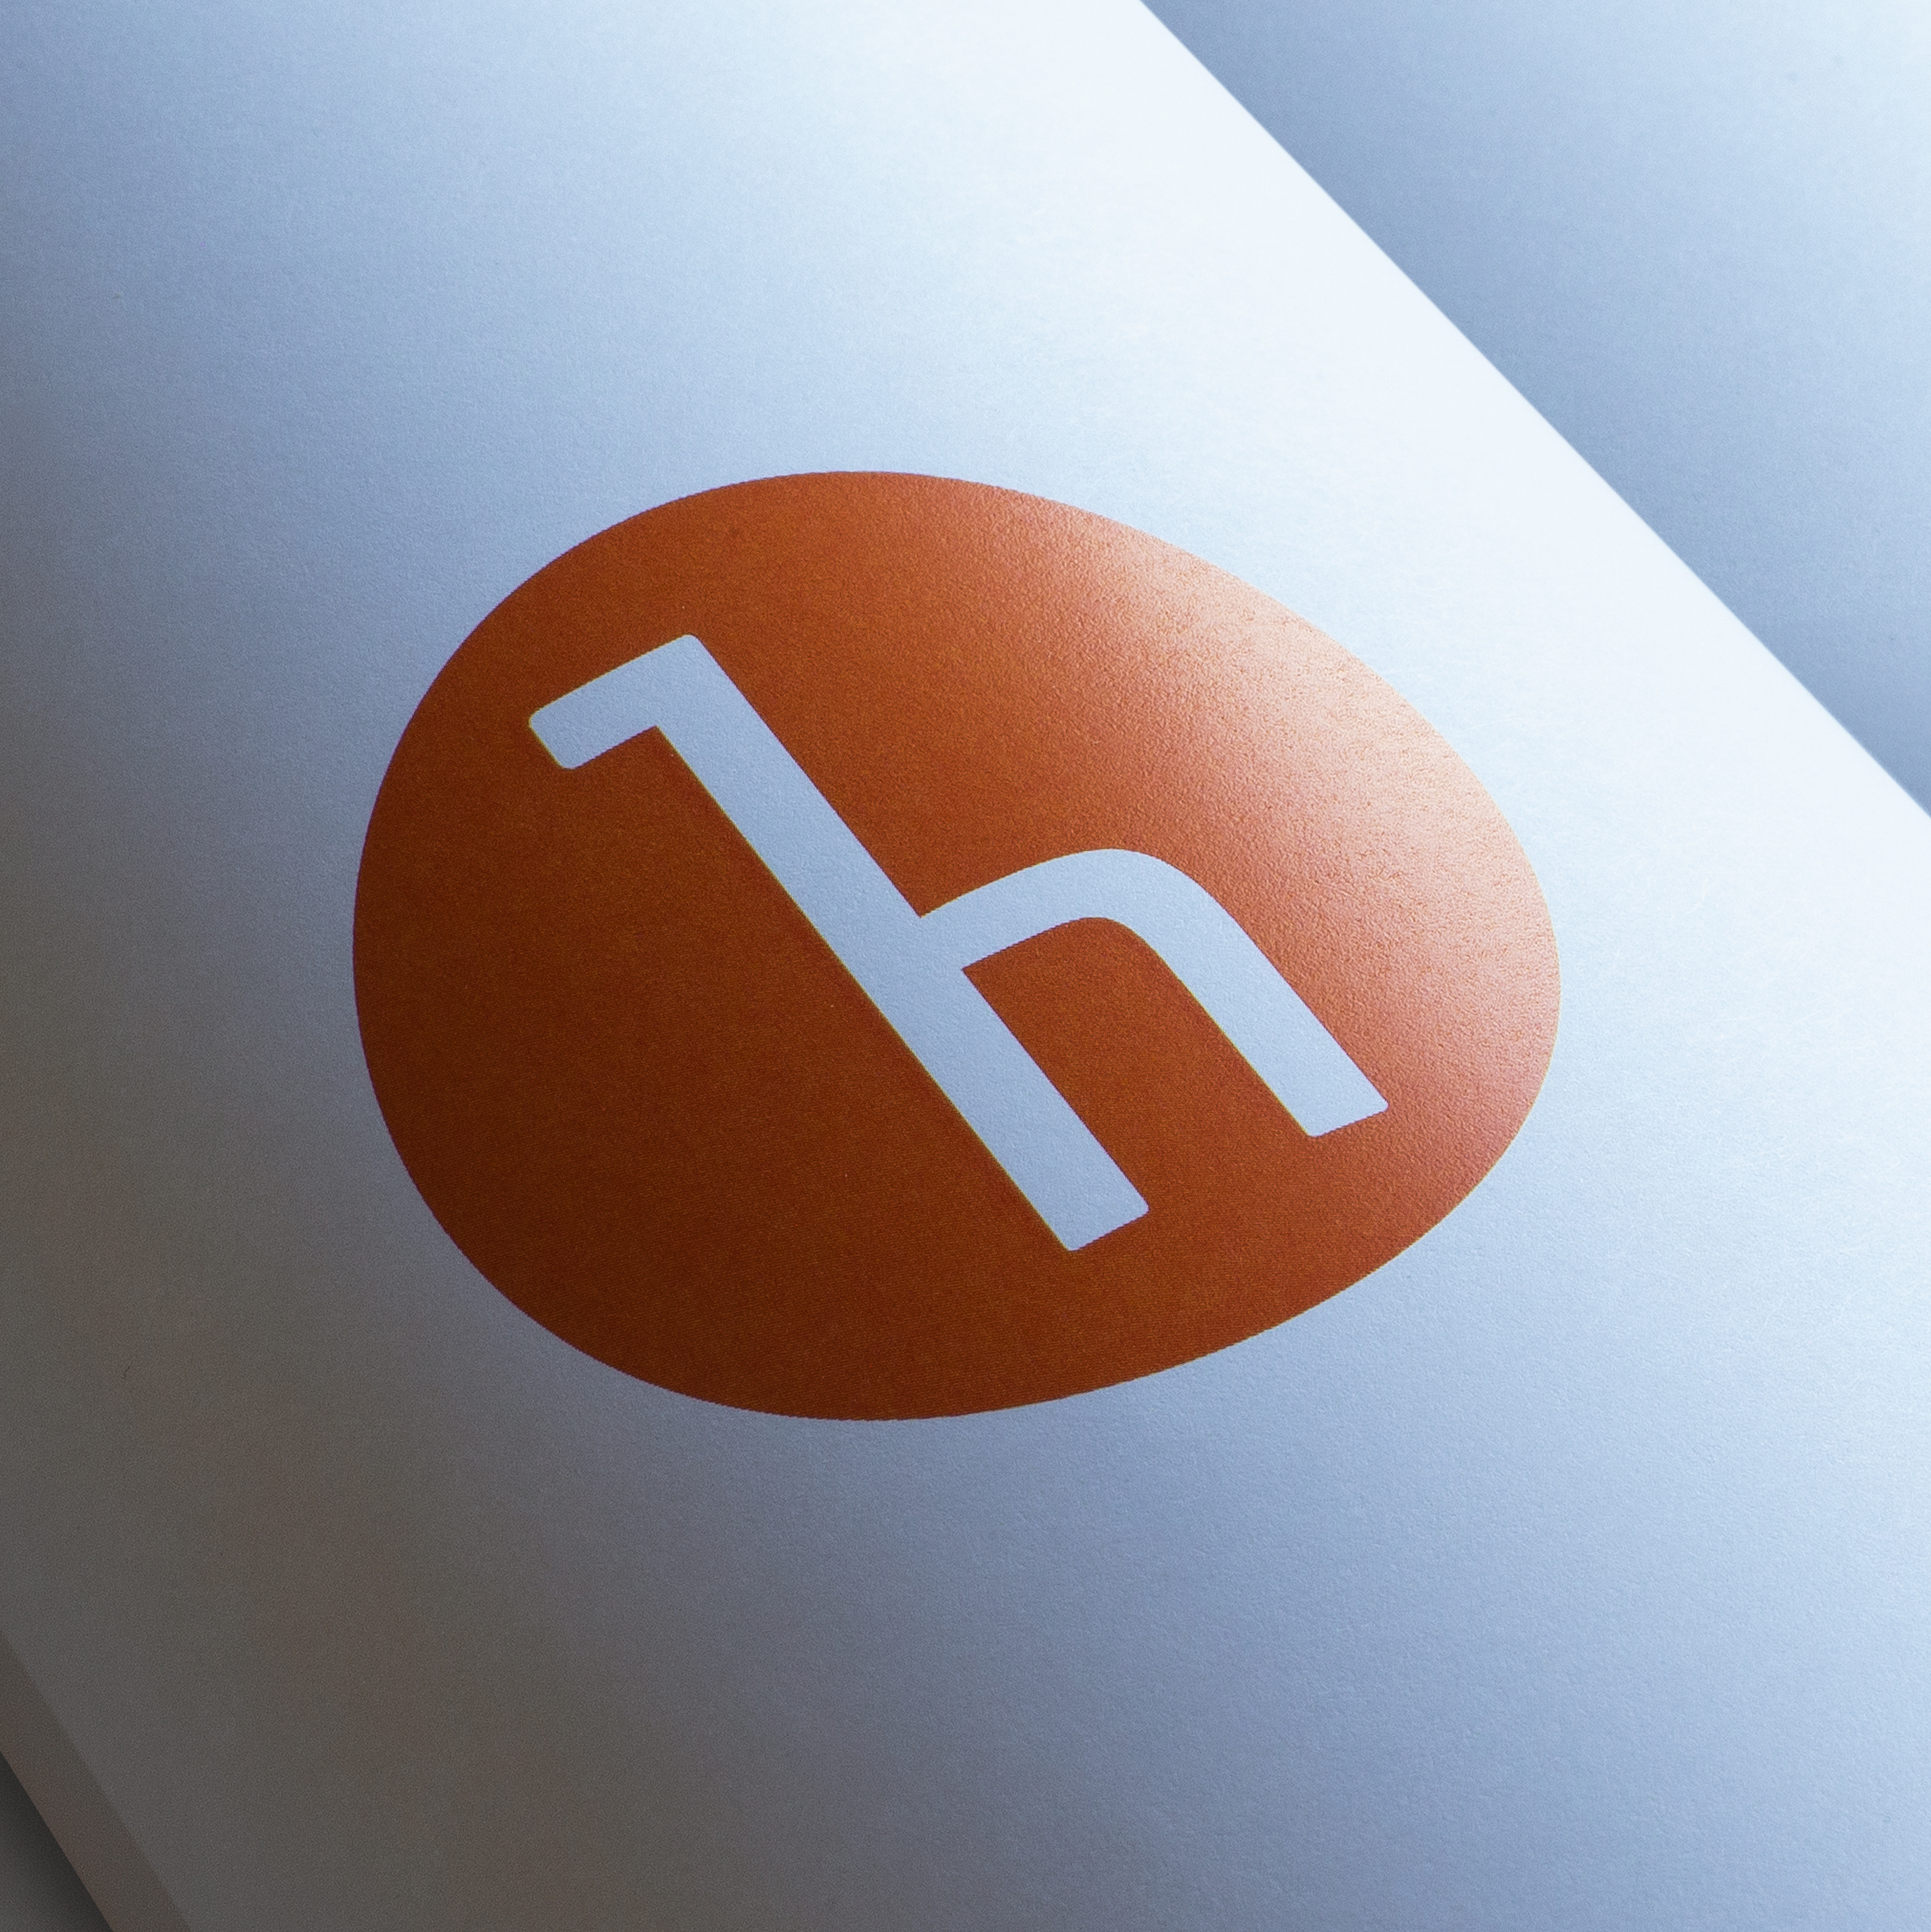 Highview logo printed on material